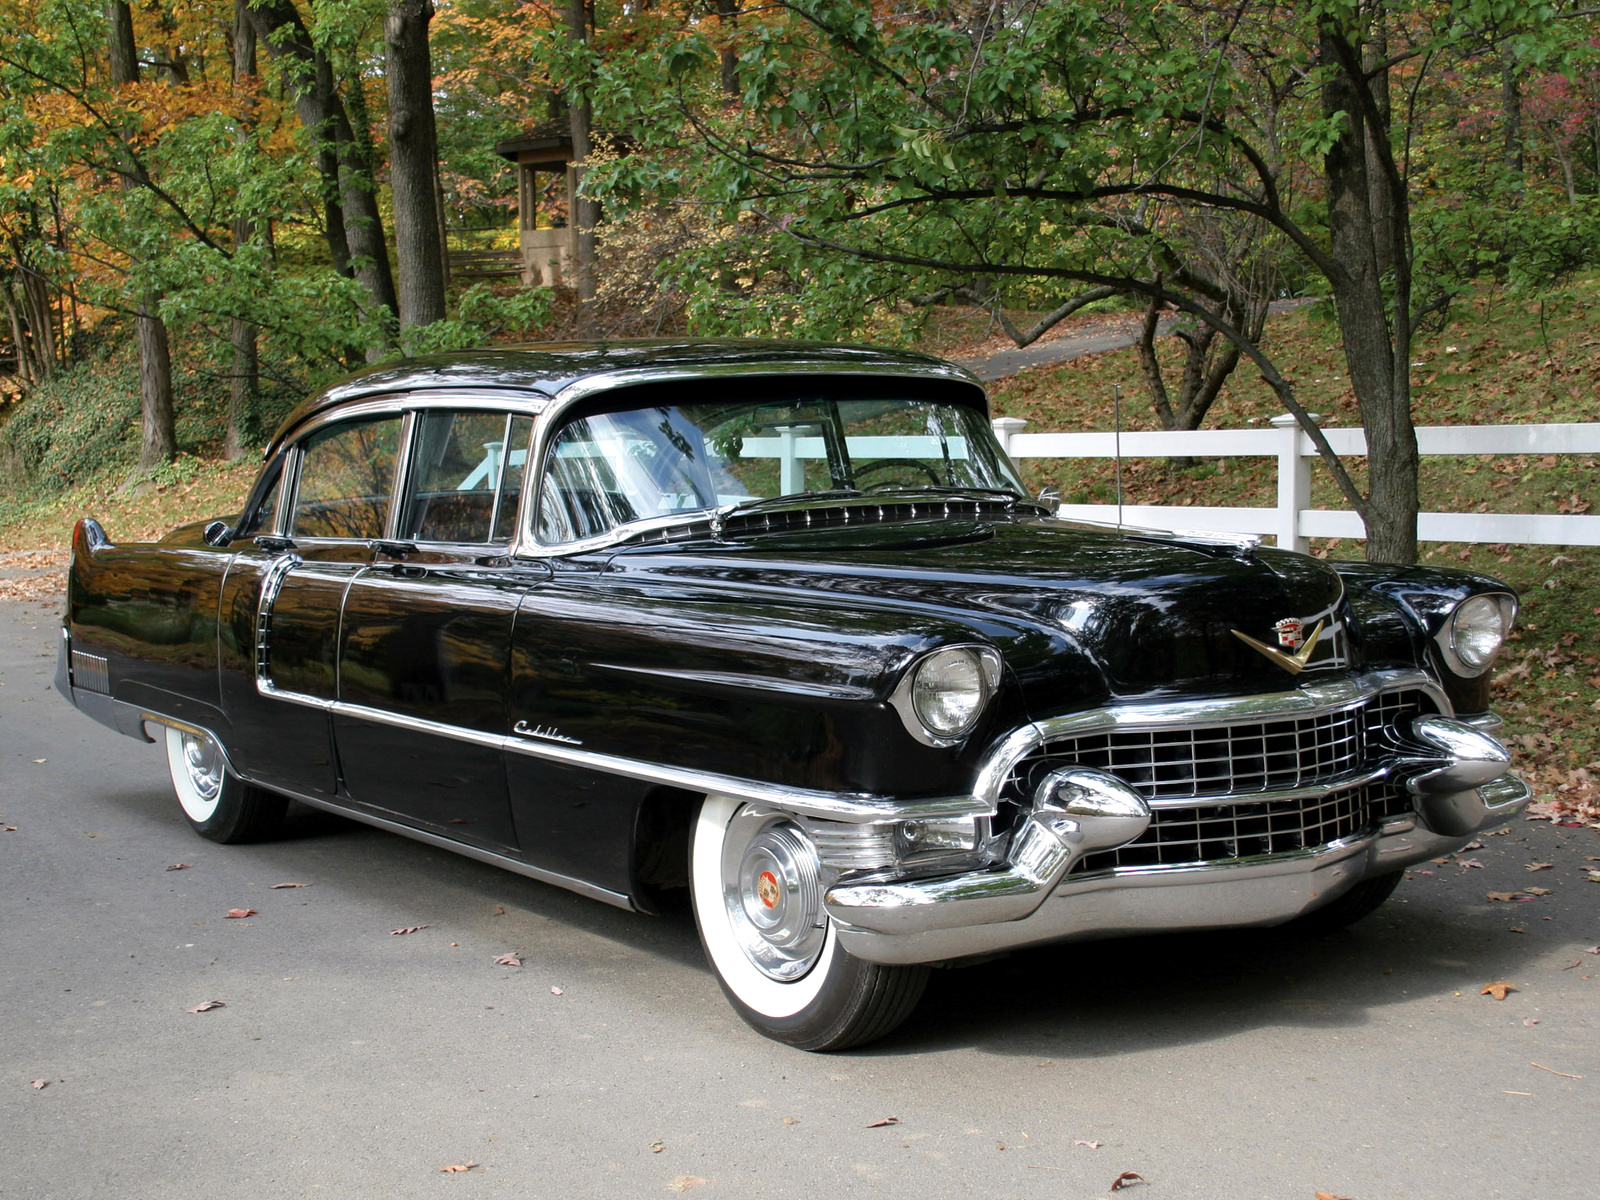 Cadillac fleetwood photo - 4